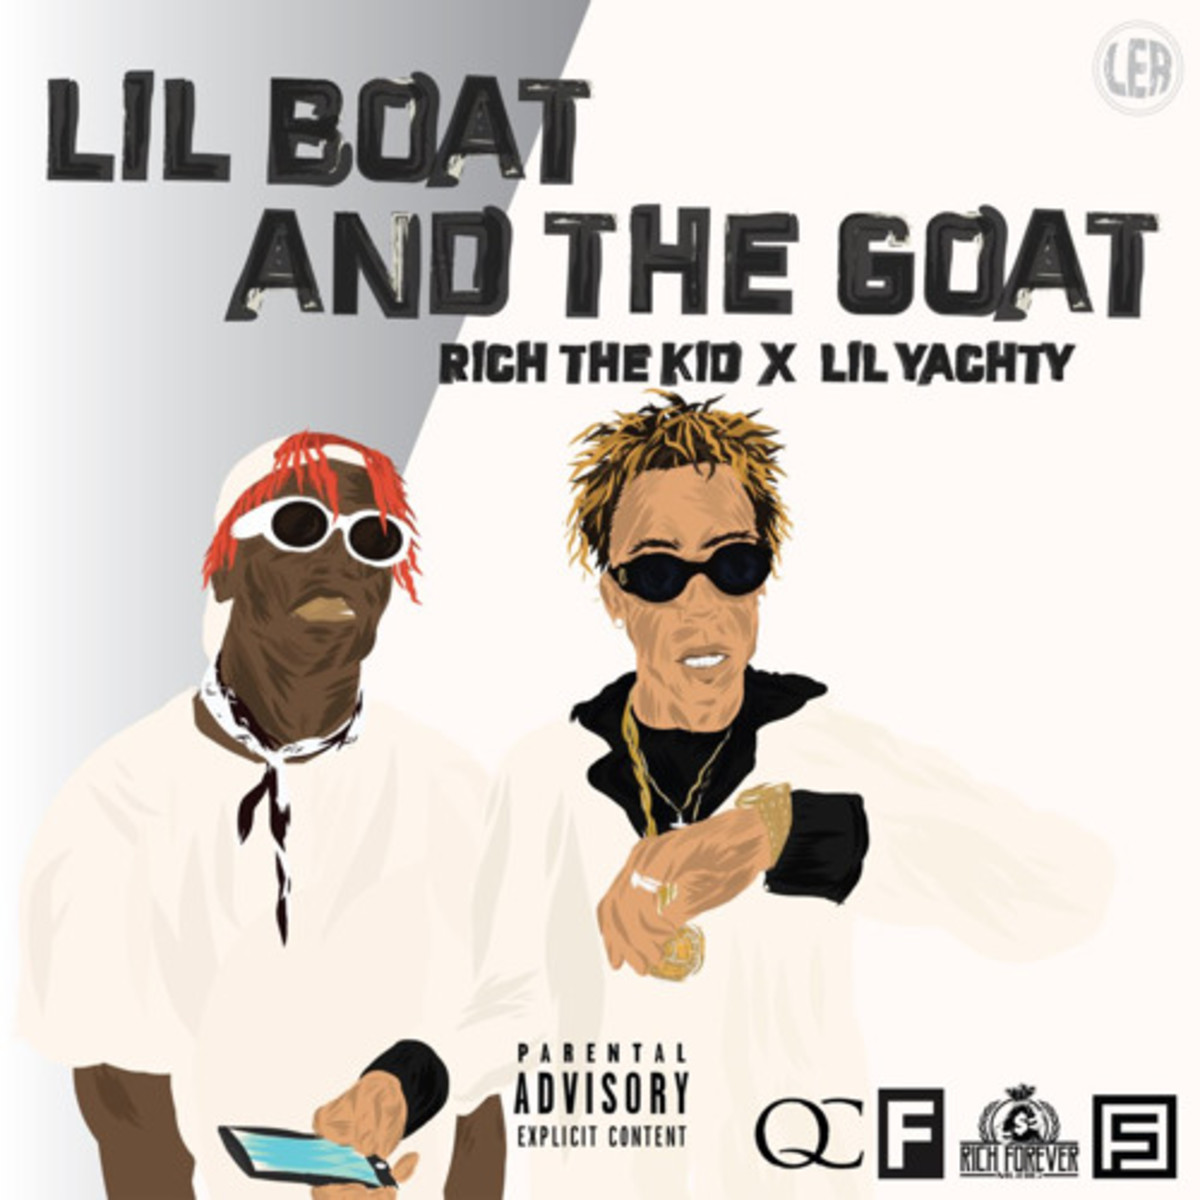 rich-the-kid-lil-yachty-lil-boat-and-the-goatjpg.jpg